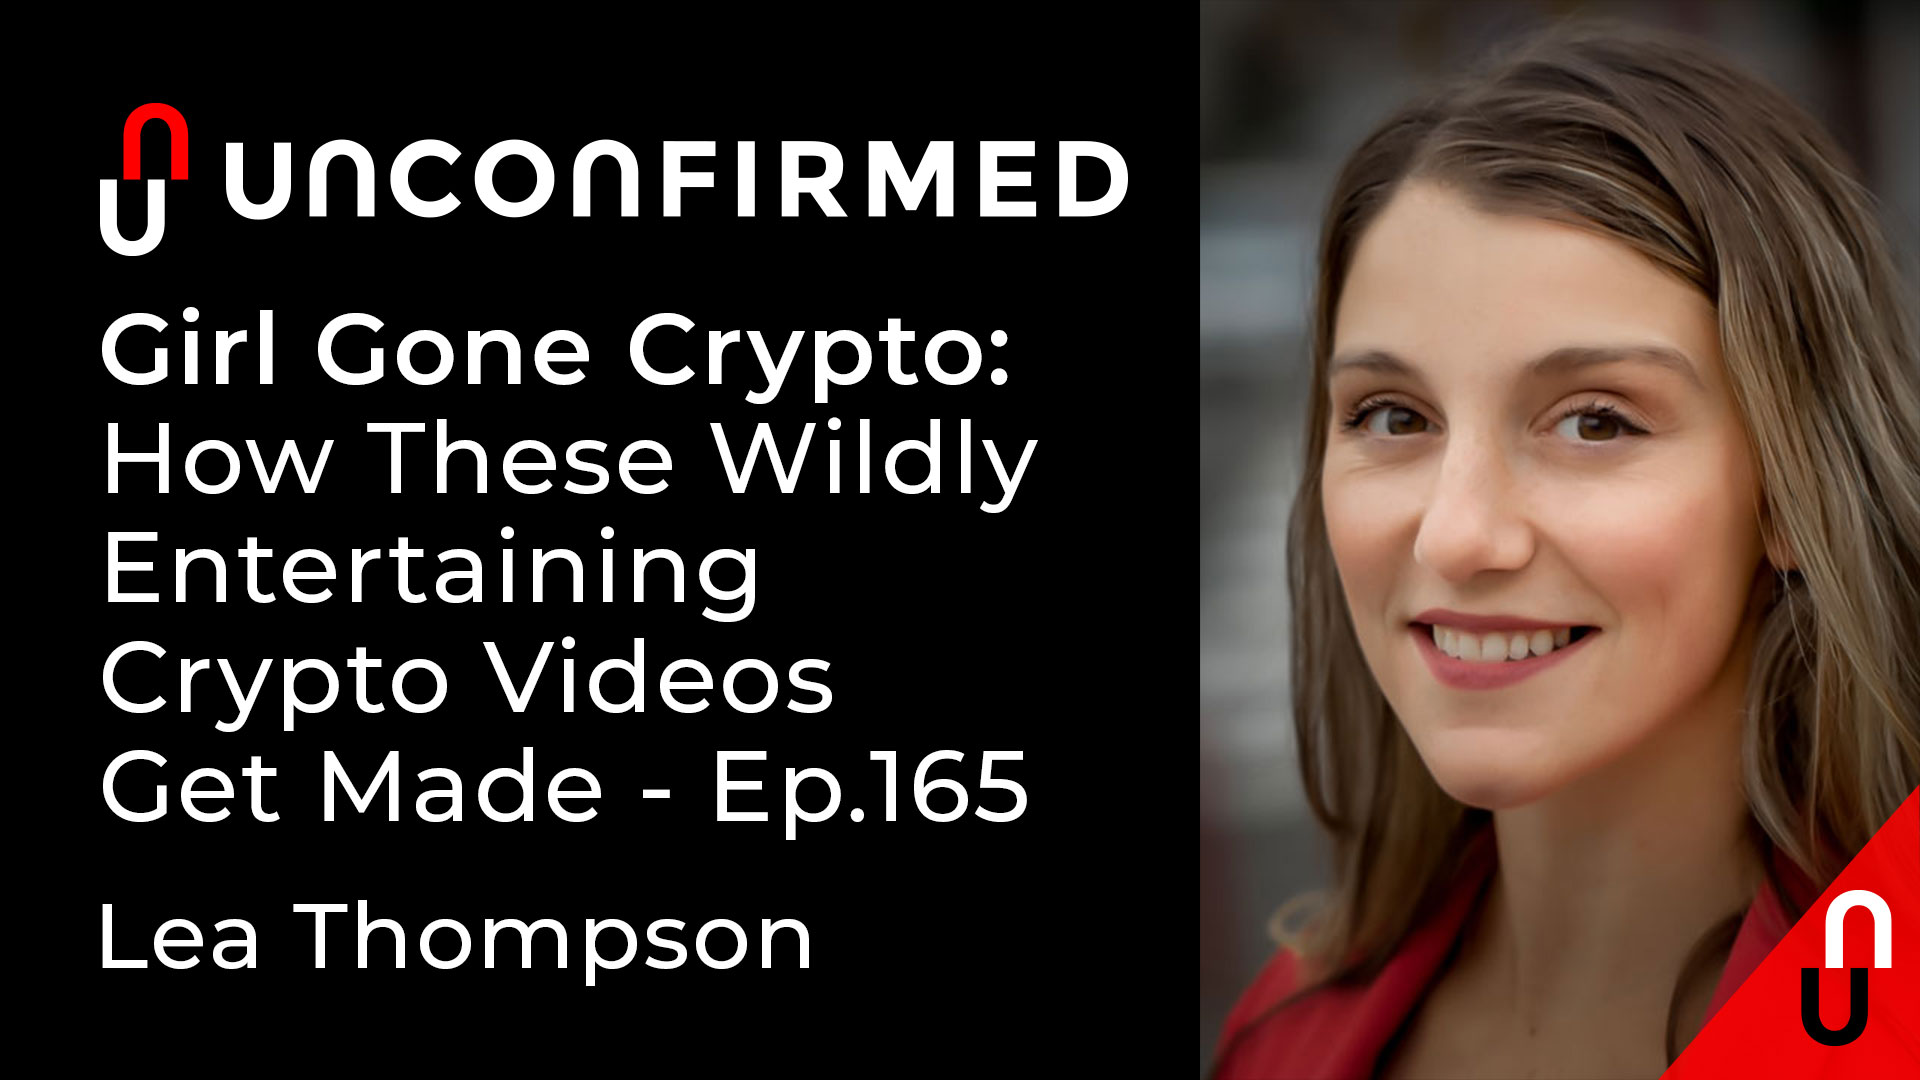 Girl Gone Crypto: How These Wildly Entertaining Crypto Videos Get Made